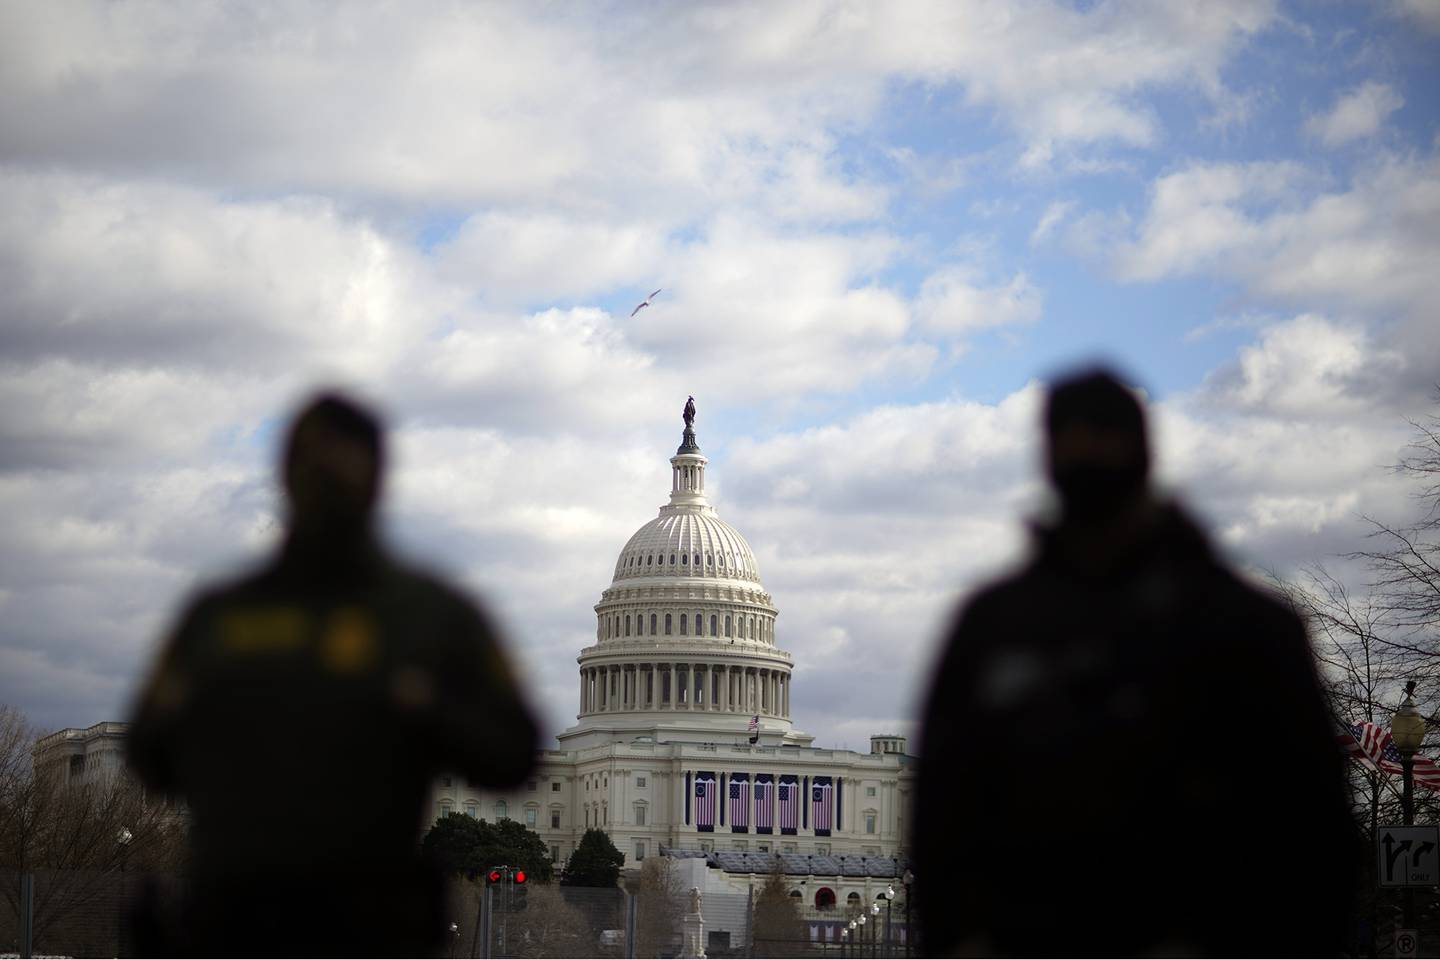 Law enforcement stand near the Capitol ahead of the inauguration of President-elect Joe Biden and Vice President-elect Kamala Harris, Sunday, Jan. 17, 2021, in Washington.